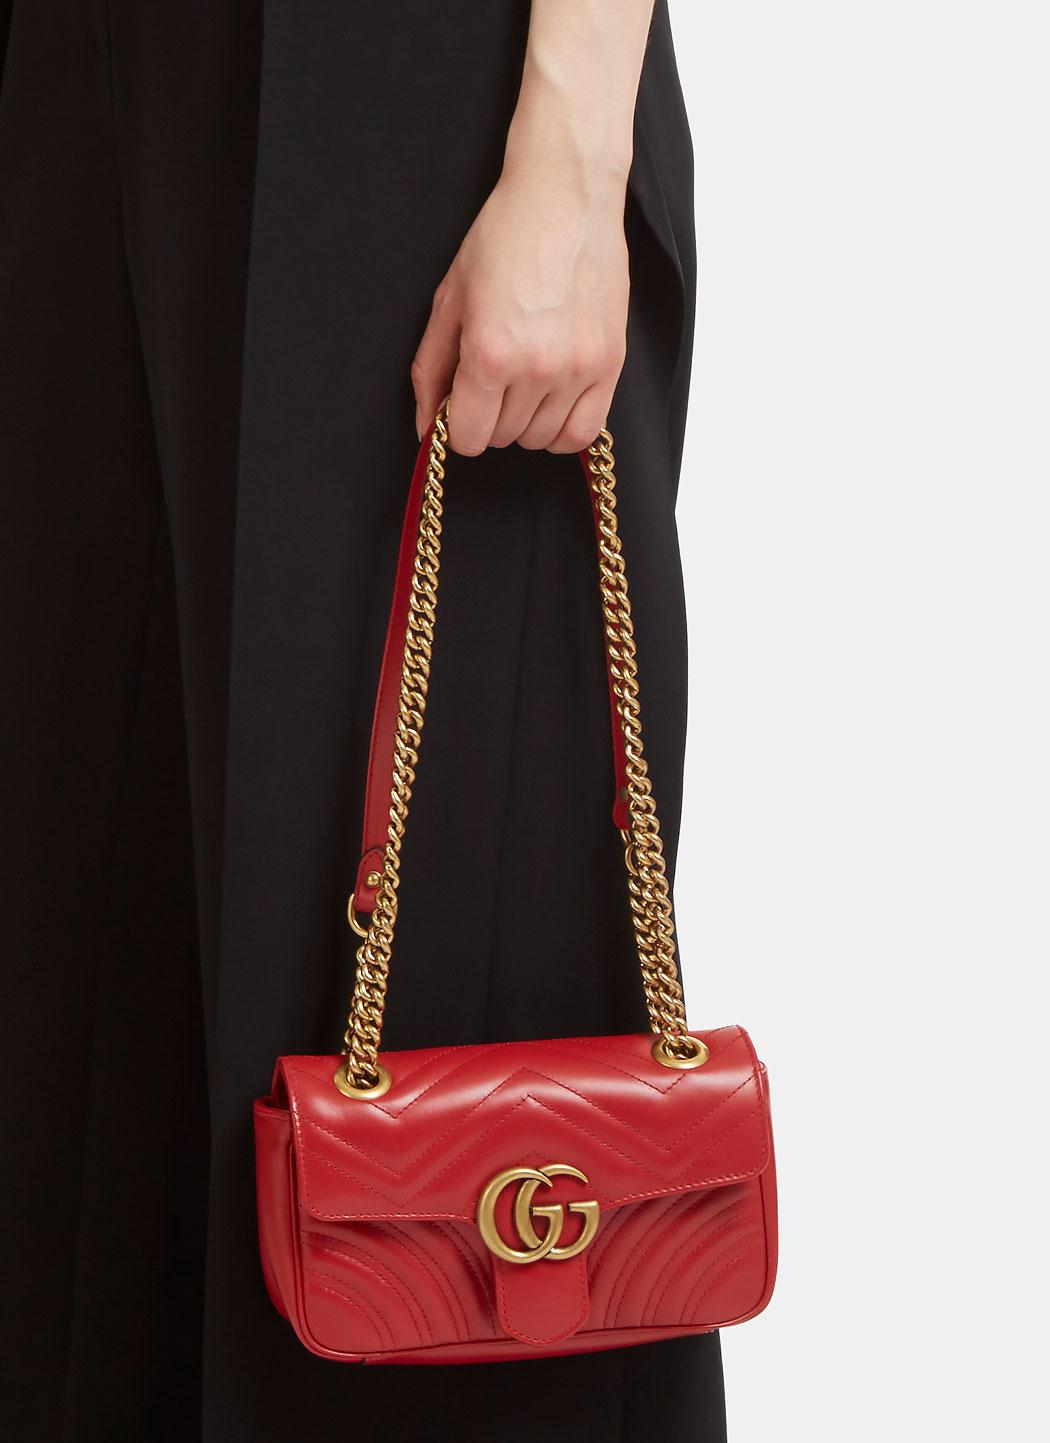 ebec135967b Lyst - Gucci Gg Marmont Matelassé Mini Chain Shoulder Bag In Red in Red